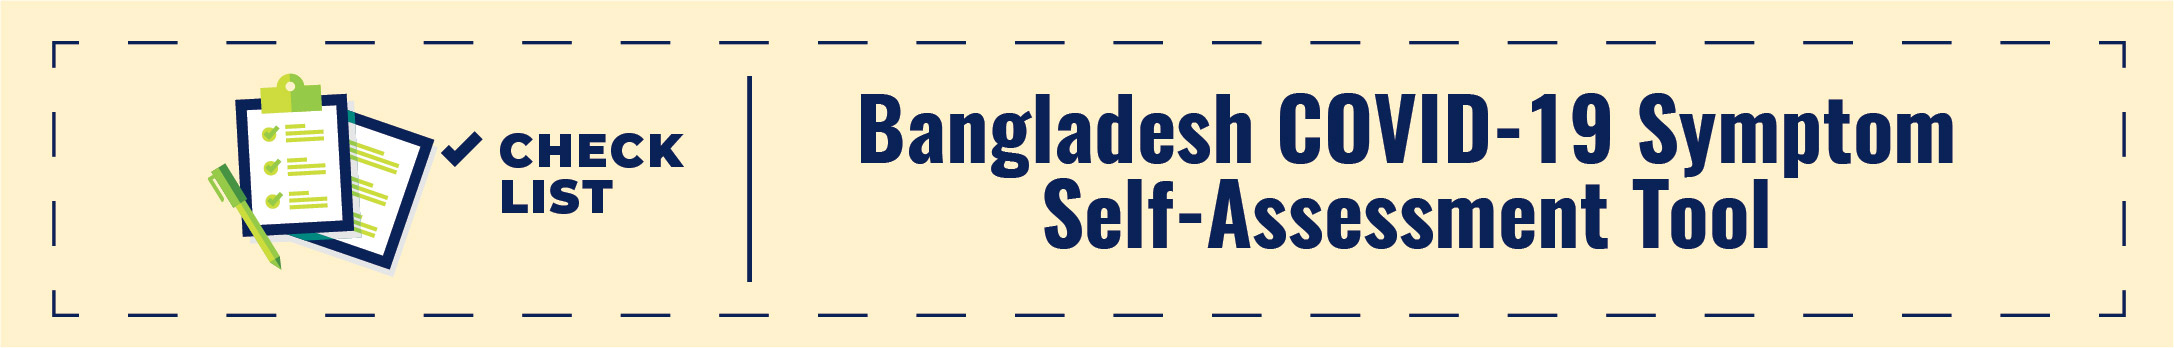 Bangladesh COVID-19 Symptom Self-Assessment Tool